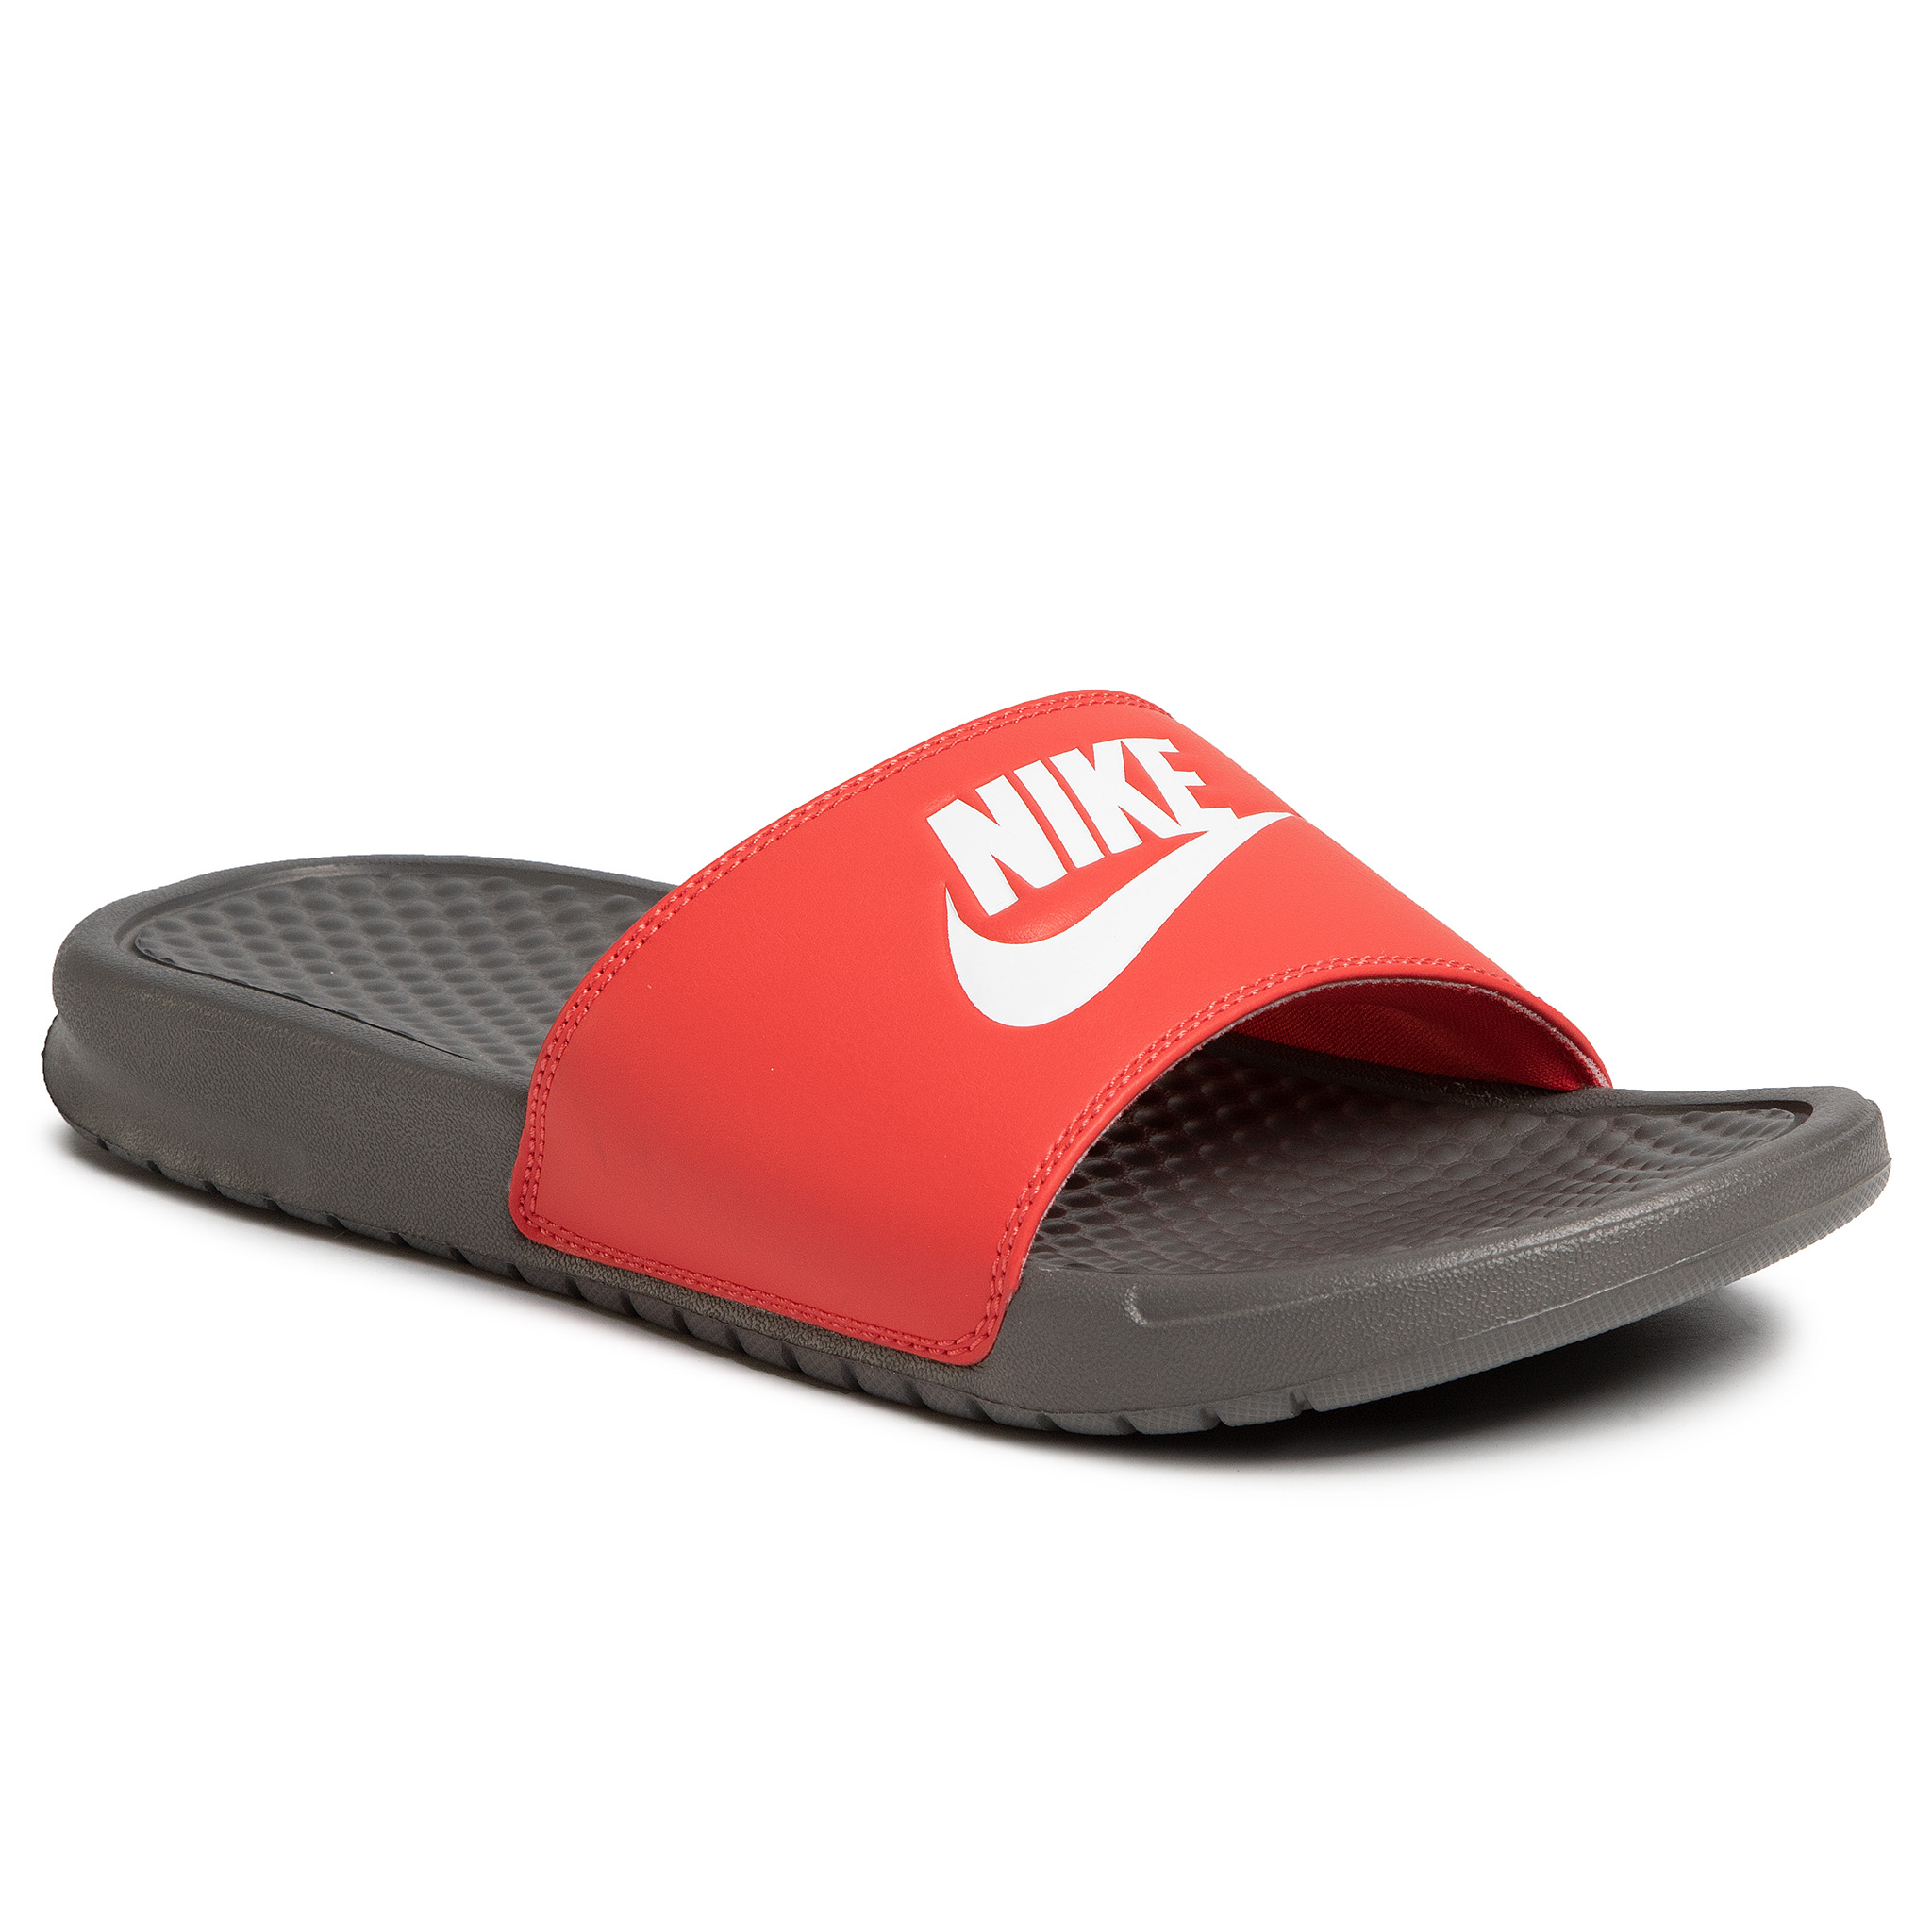 Șlapi NIKE - Benassi Jdi 343880 028 Iron Grey/White/Track Red